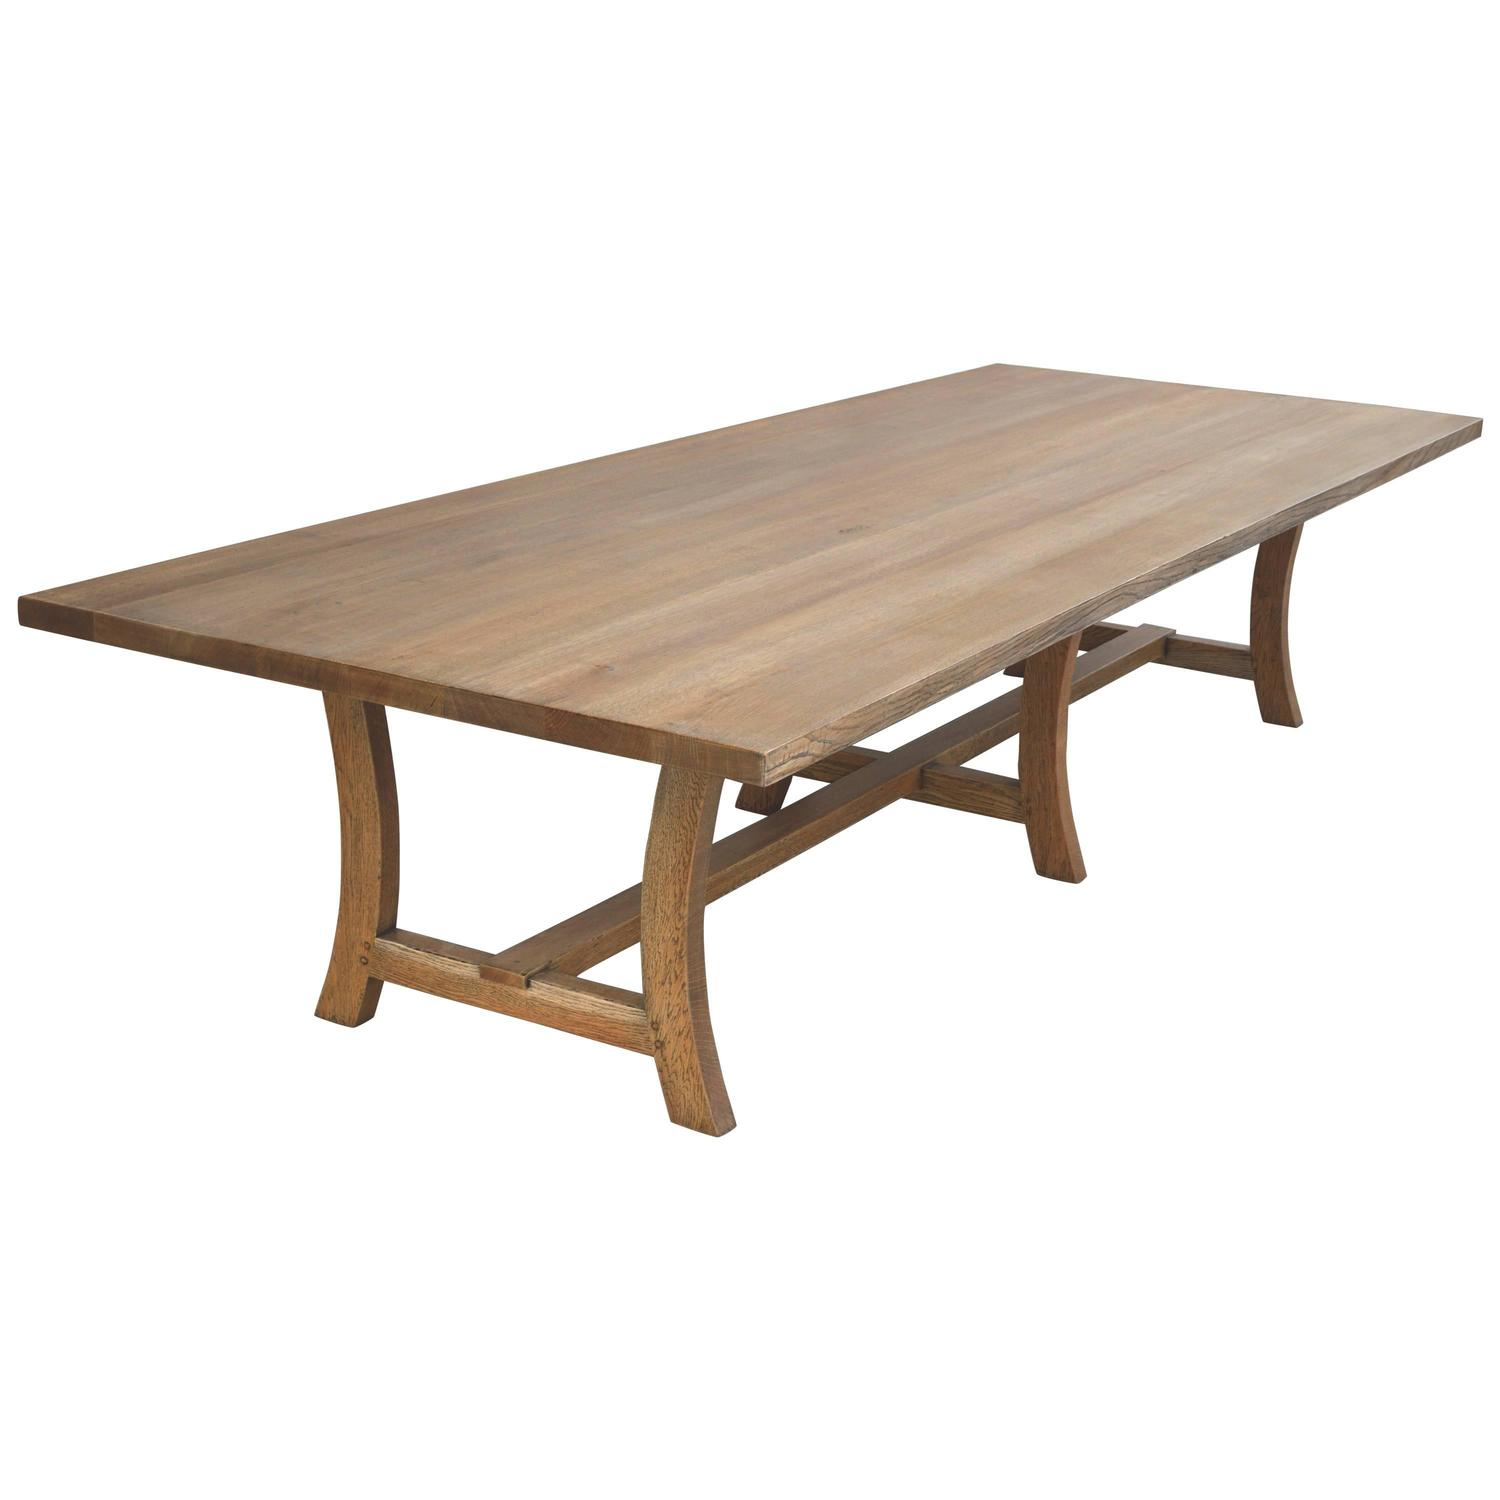 Custom dining table in rift sawn white oak for sale at 1stdibs